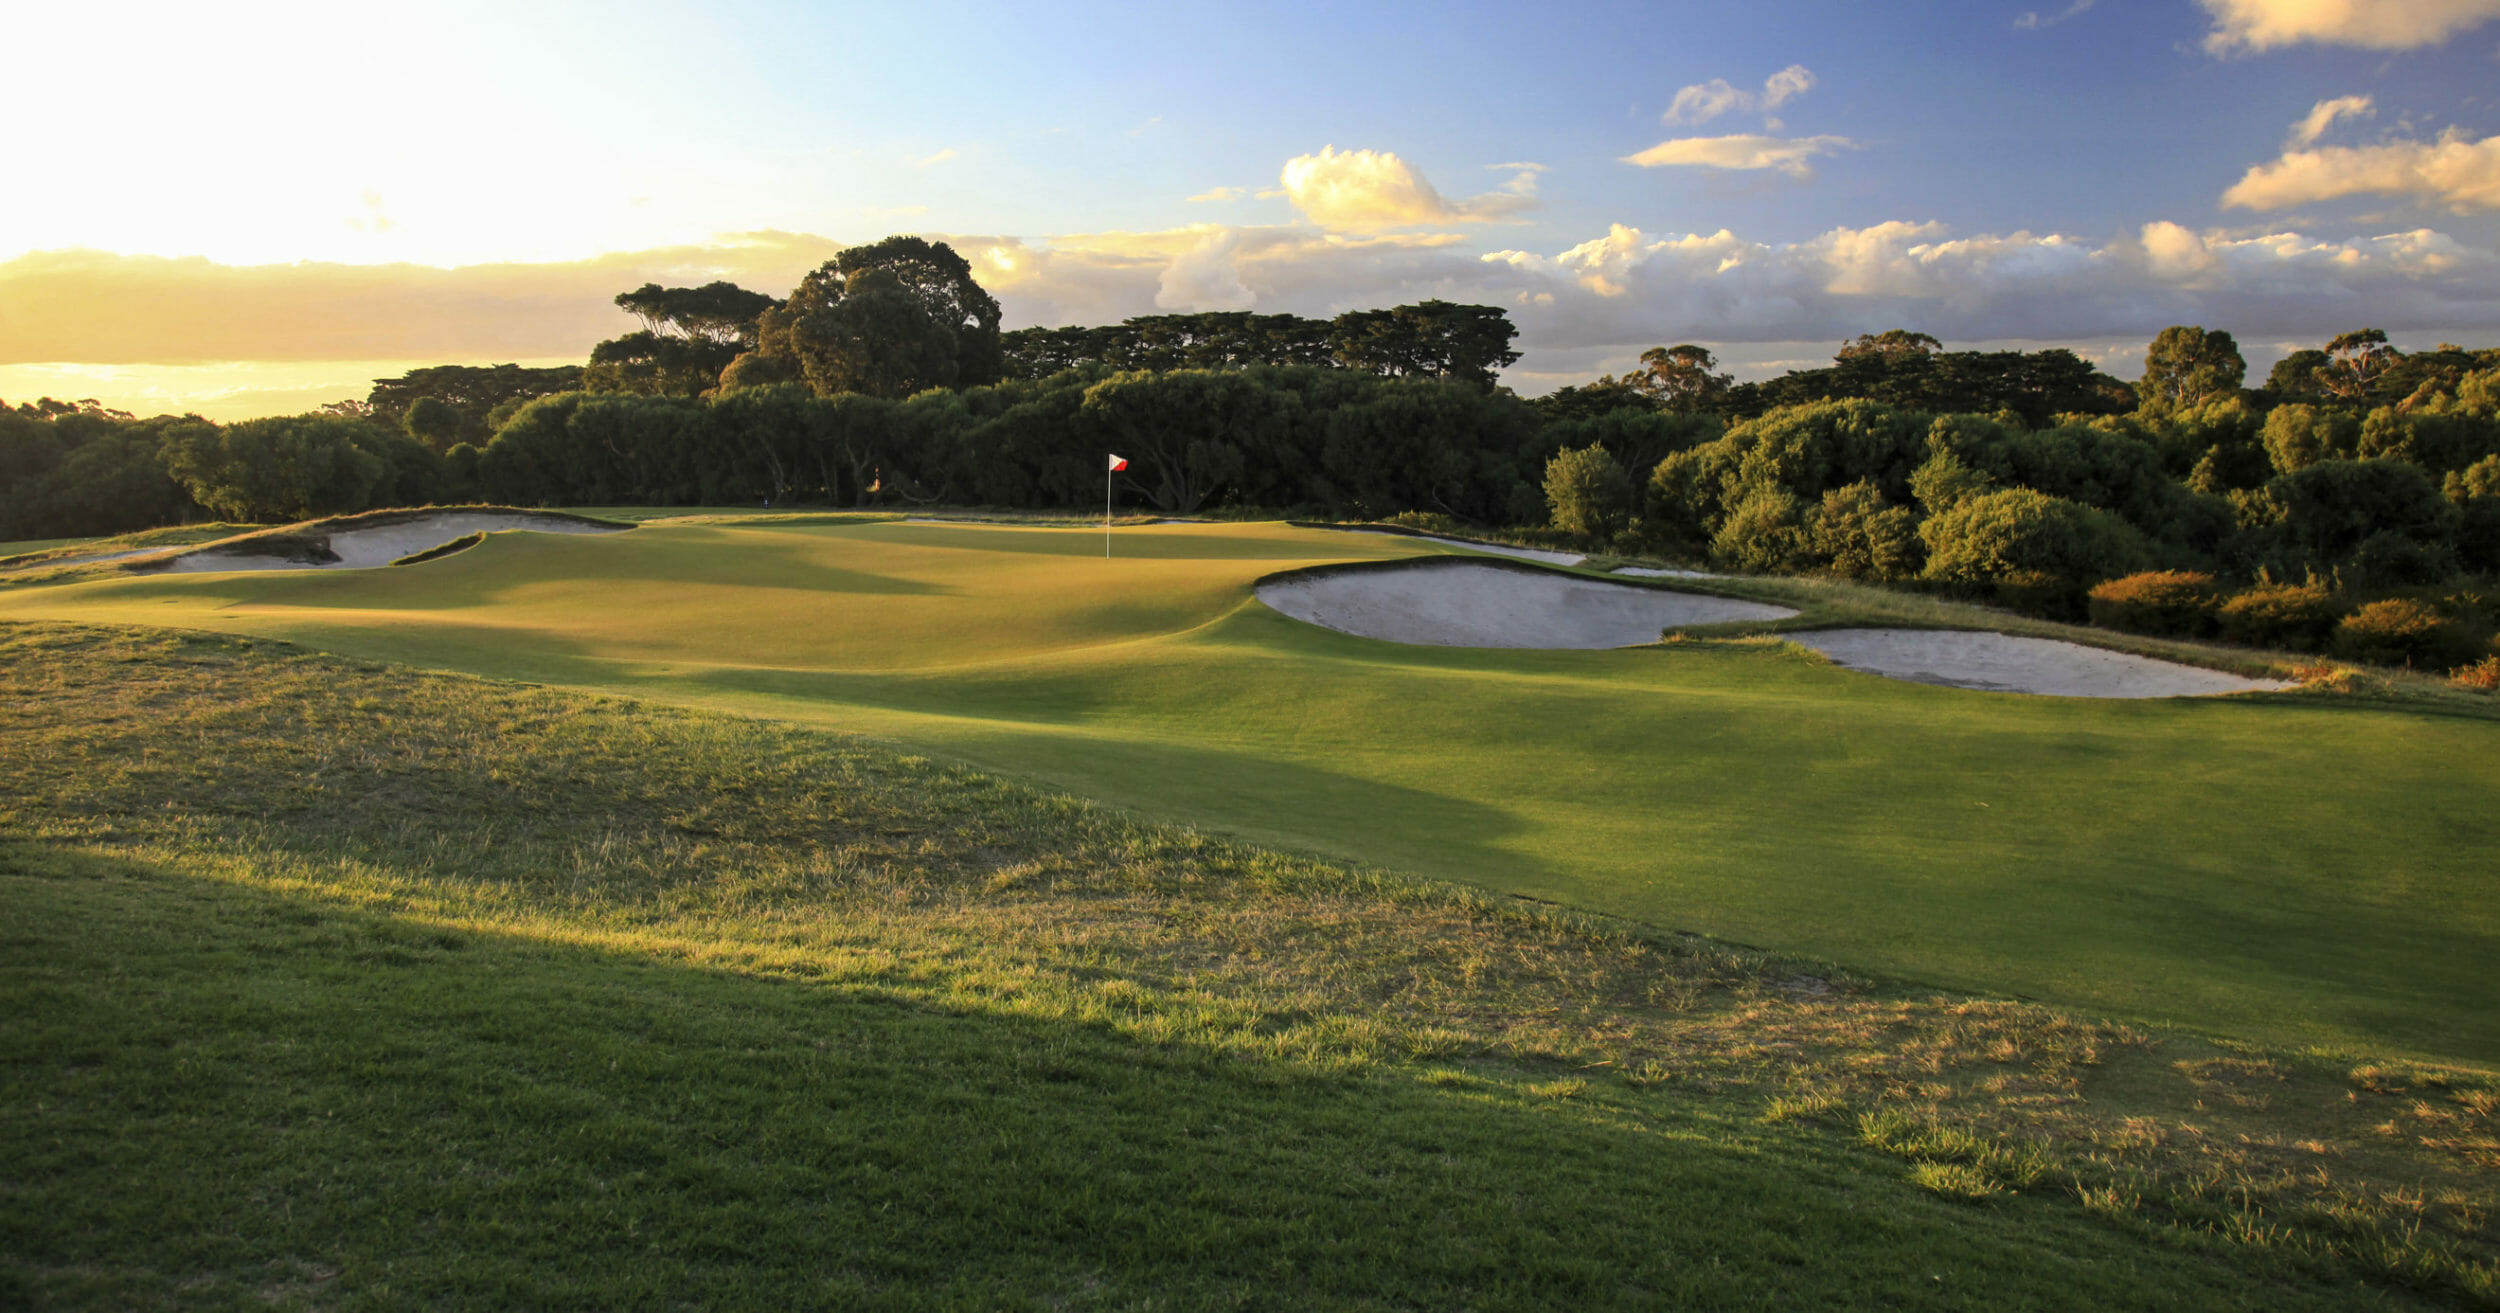 Setting sun casts golden light over the fifth green at Royal Melbourne